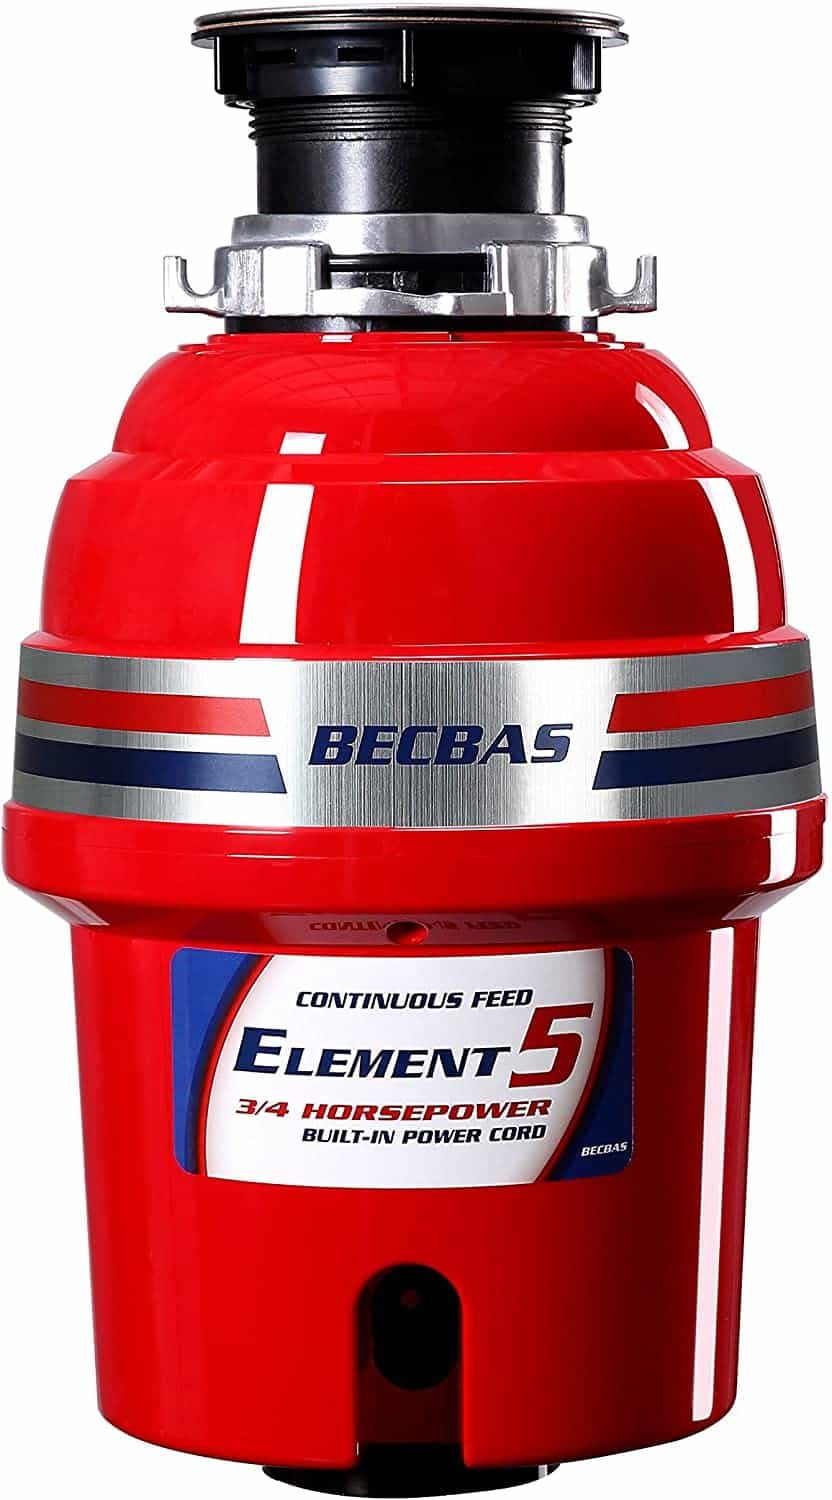 Best septic systemgarbagedisposal for under $100: Becbas Element 5